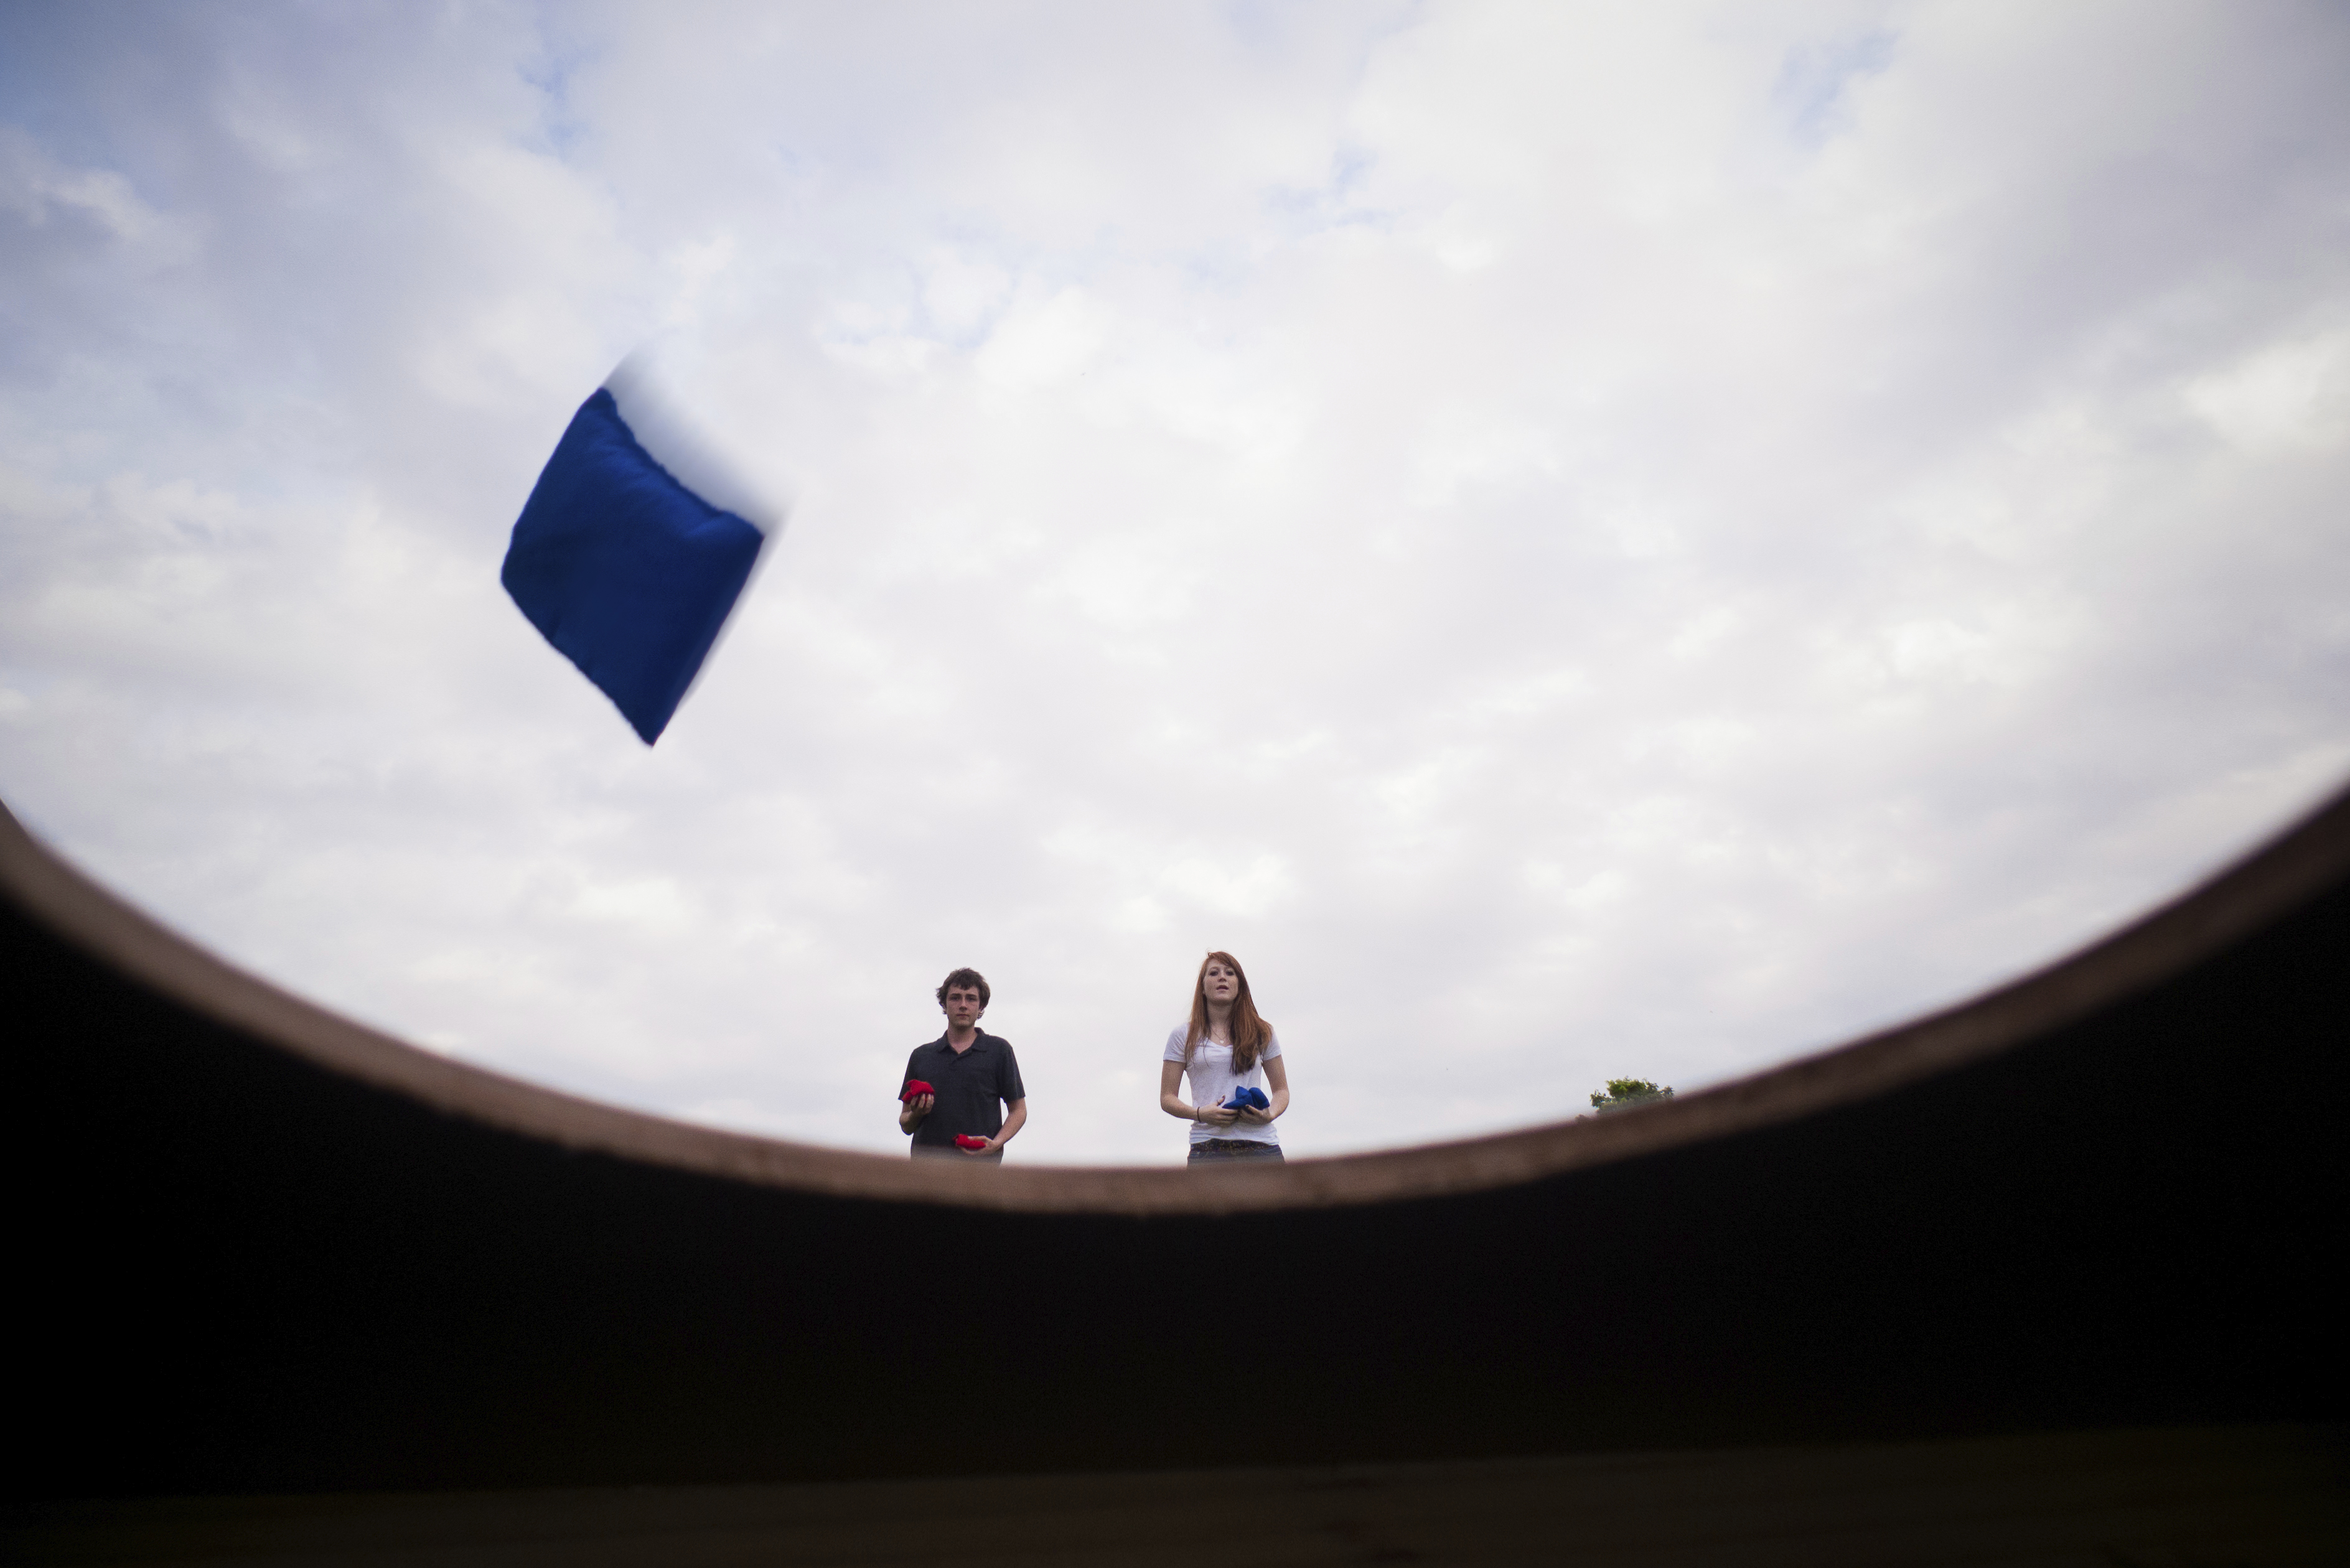 Boy and girl playing beanbag toss at park